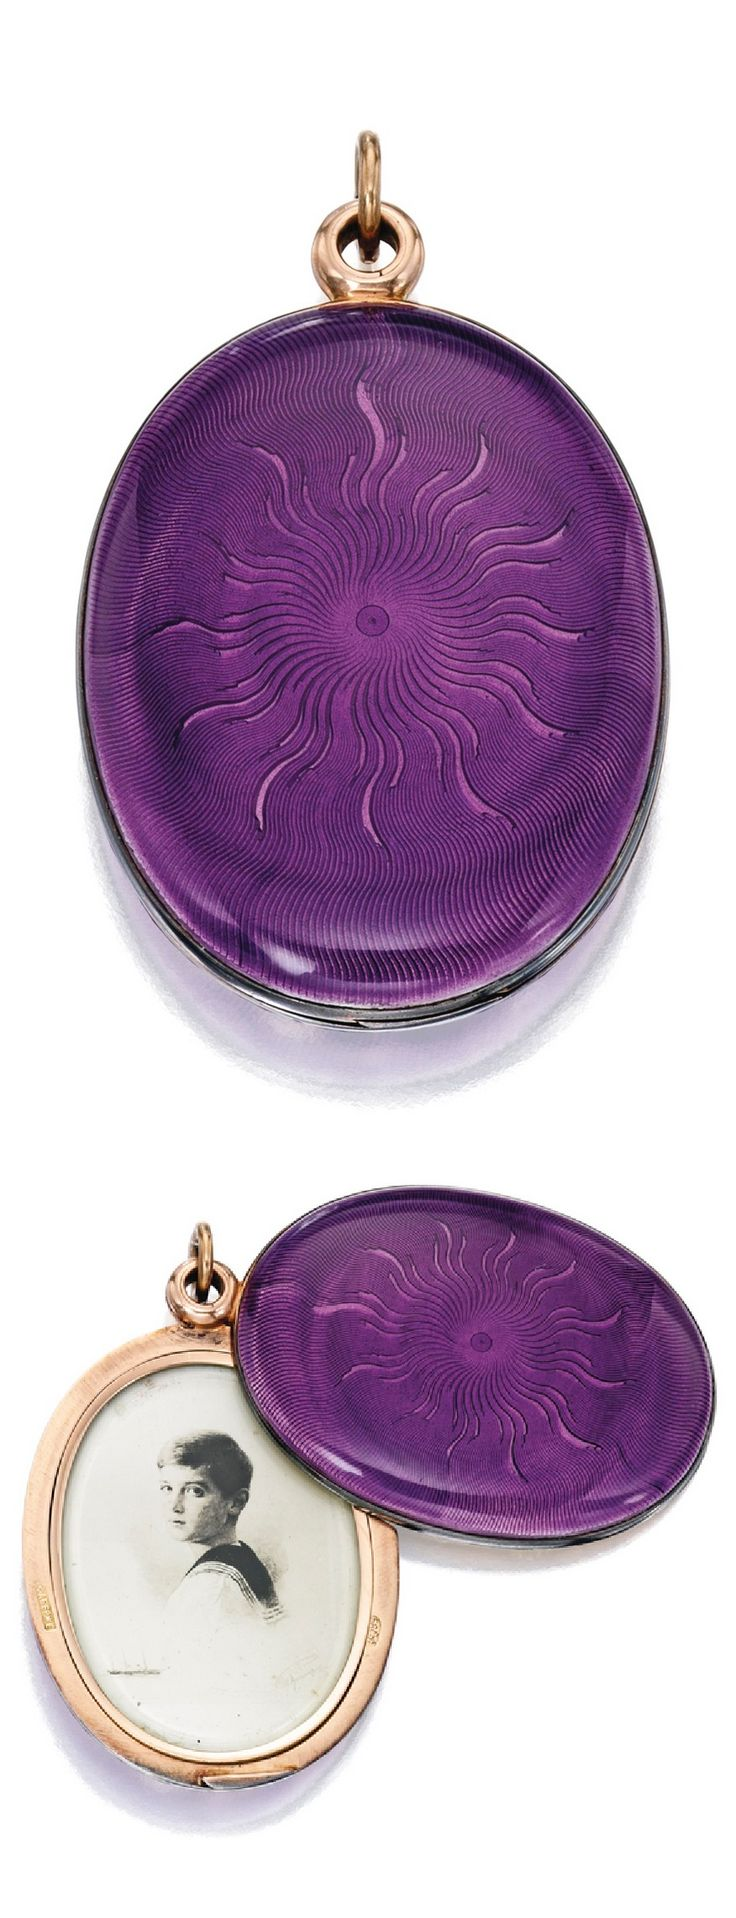 Fabergé - An antique gold, silver and guilloché enamel pendant-locket, workmaster Henrik Wigström, 1899-1908. The oval pendant with dark lavender enamel over a sunburst guilloché ground, the interior fitted with a mirror facing a portrait of Tsarevich Alexei Nikolaevich, stamped Fabergé, with Russian hallmark and workshop mark for Henrik Wigström. Accompanied by a lock of hair which was encased in the interior of the piece. According to family tradition, this hair is that of Tsarevich…